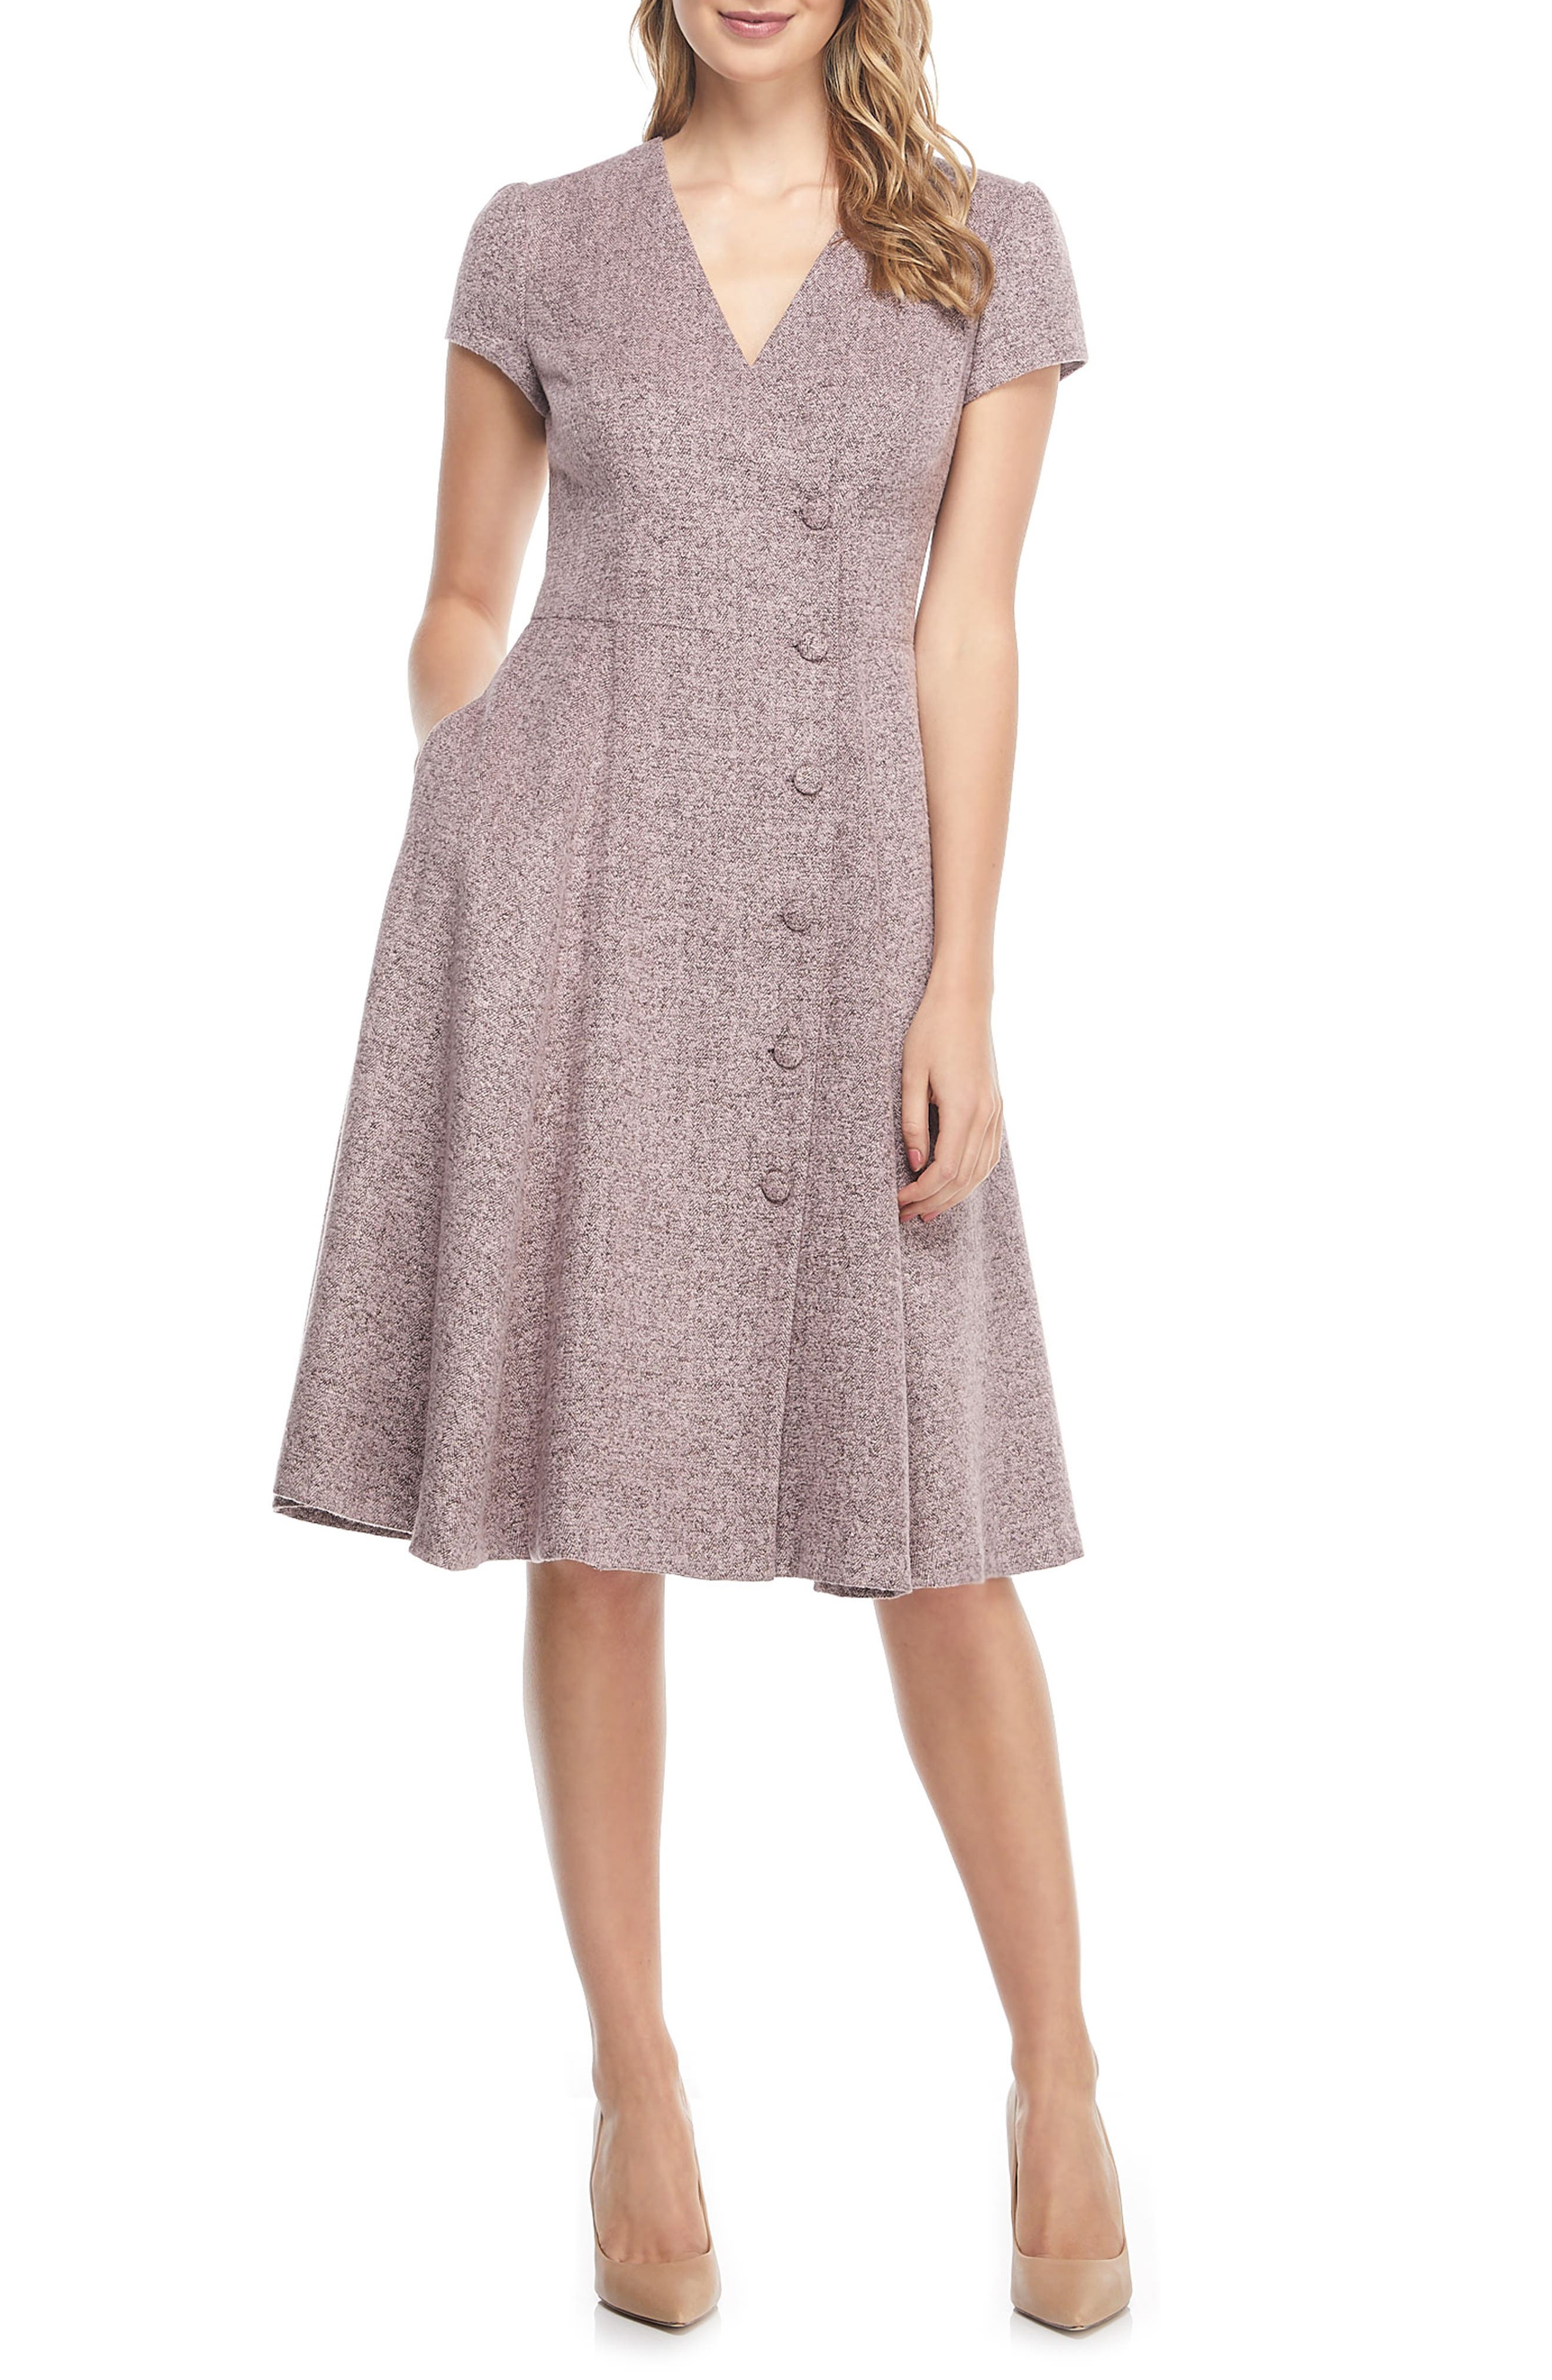 Agatha Dainty Tweed Dress,                             Alternate thumbnail 4, color,                             650